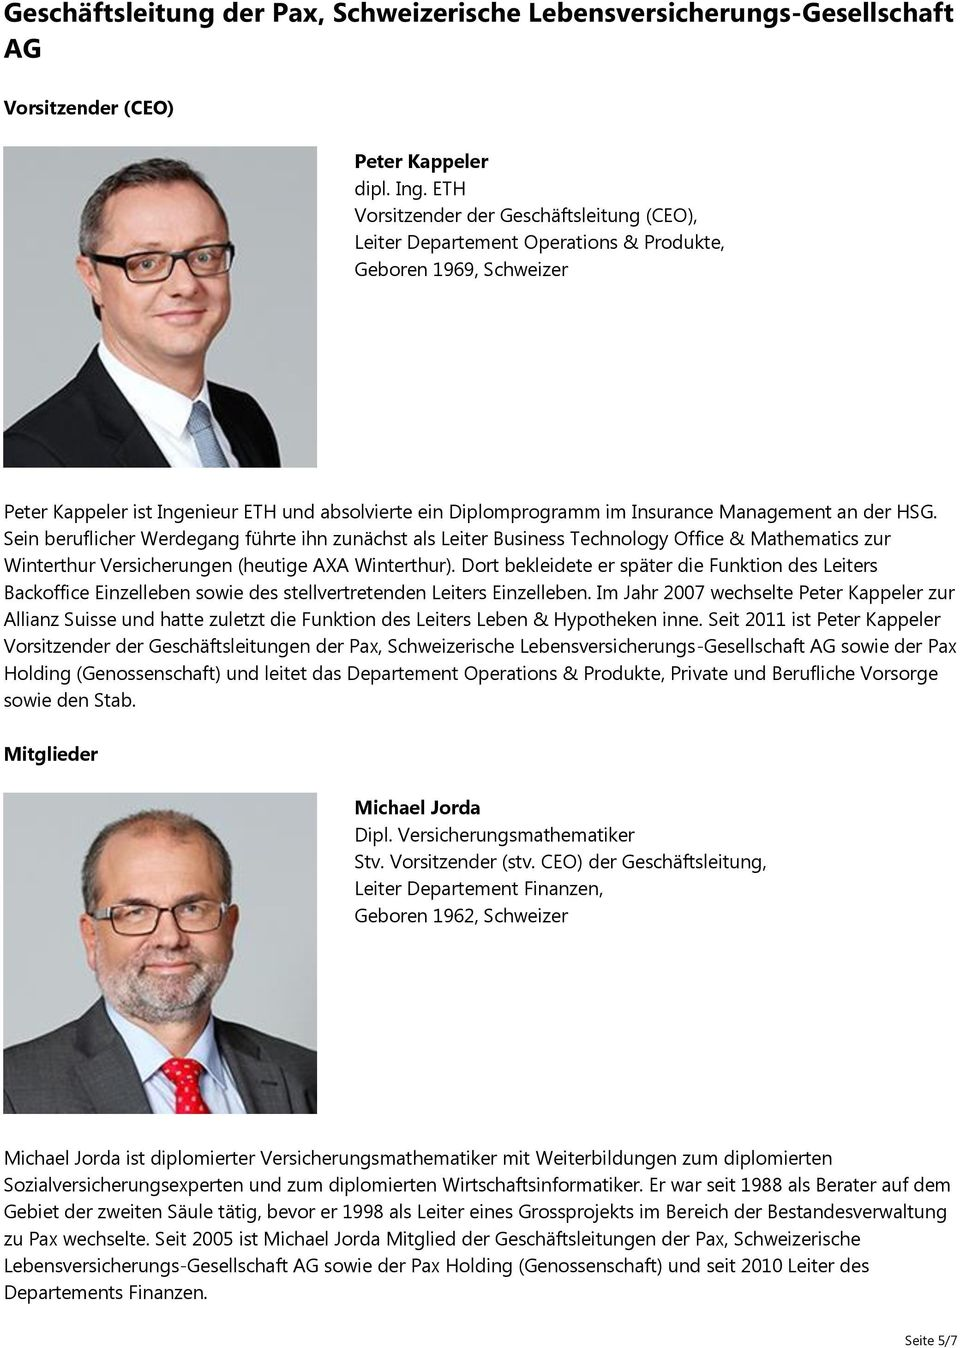 Management an der HSG. Sein beruflicher Werdegang führte ihn zunächst als Leiter Business Technology Office & Mathematics zur Winterthur Versicherungen (heutige AXA Winterthur).